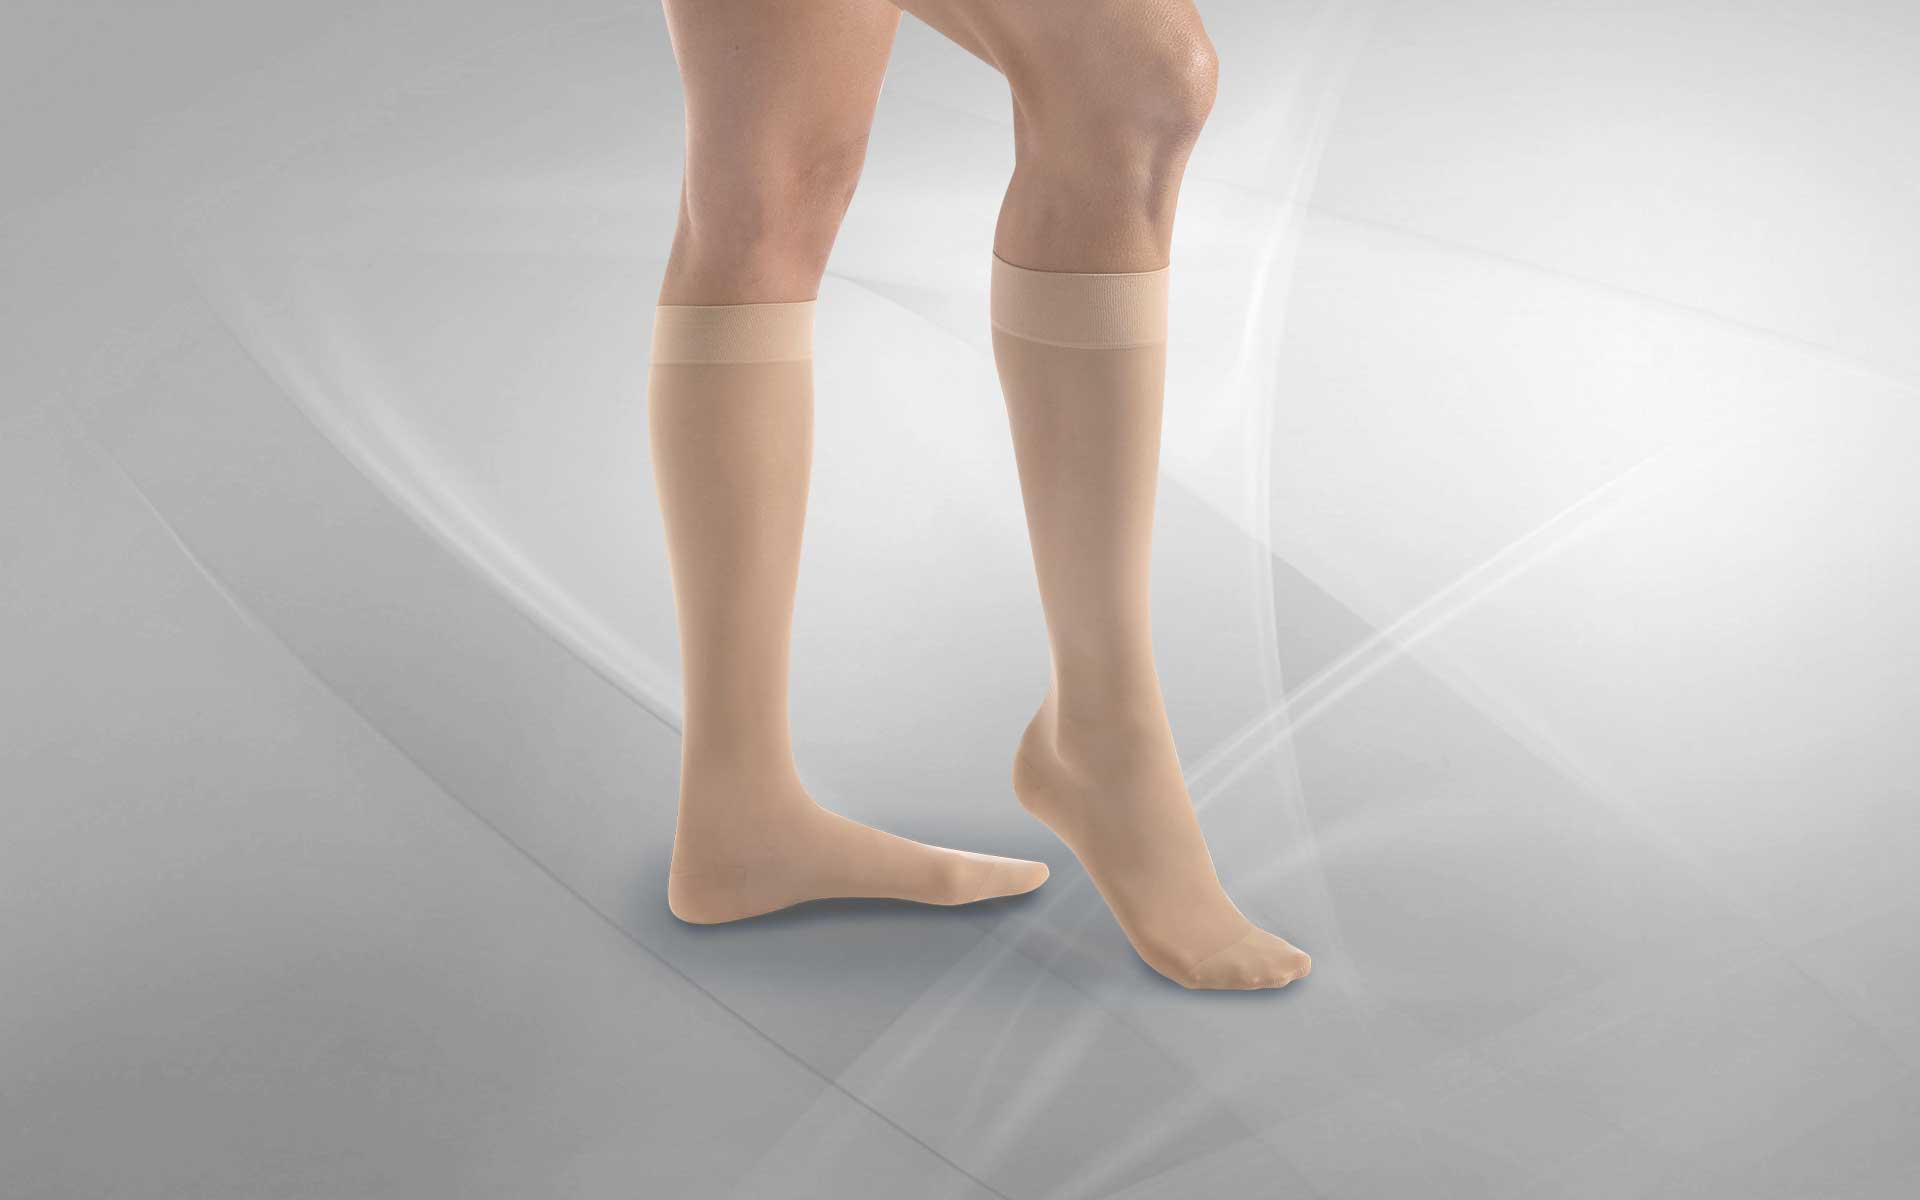 how to get free compression stockings